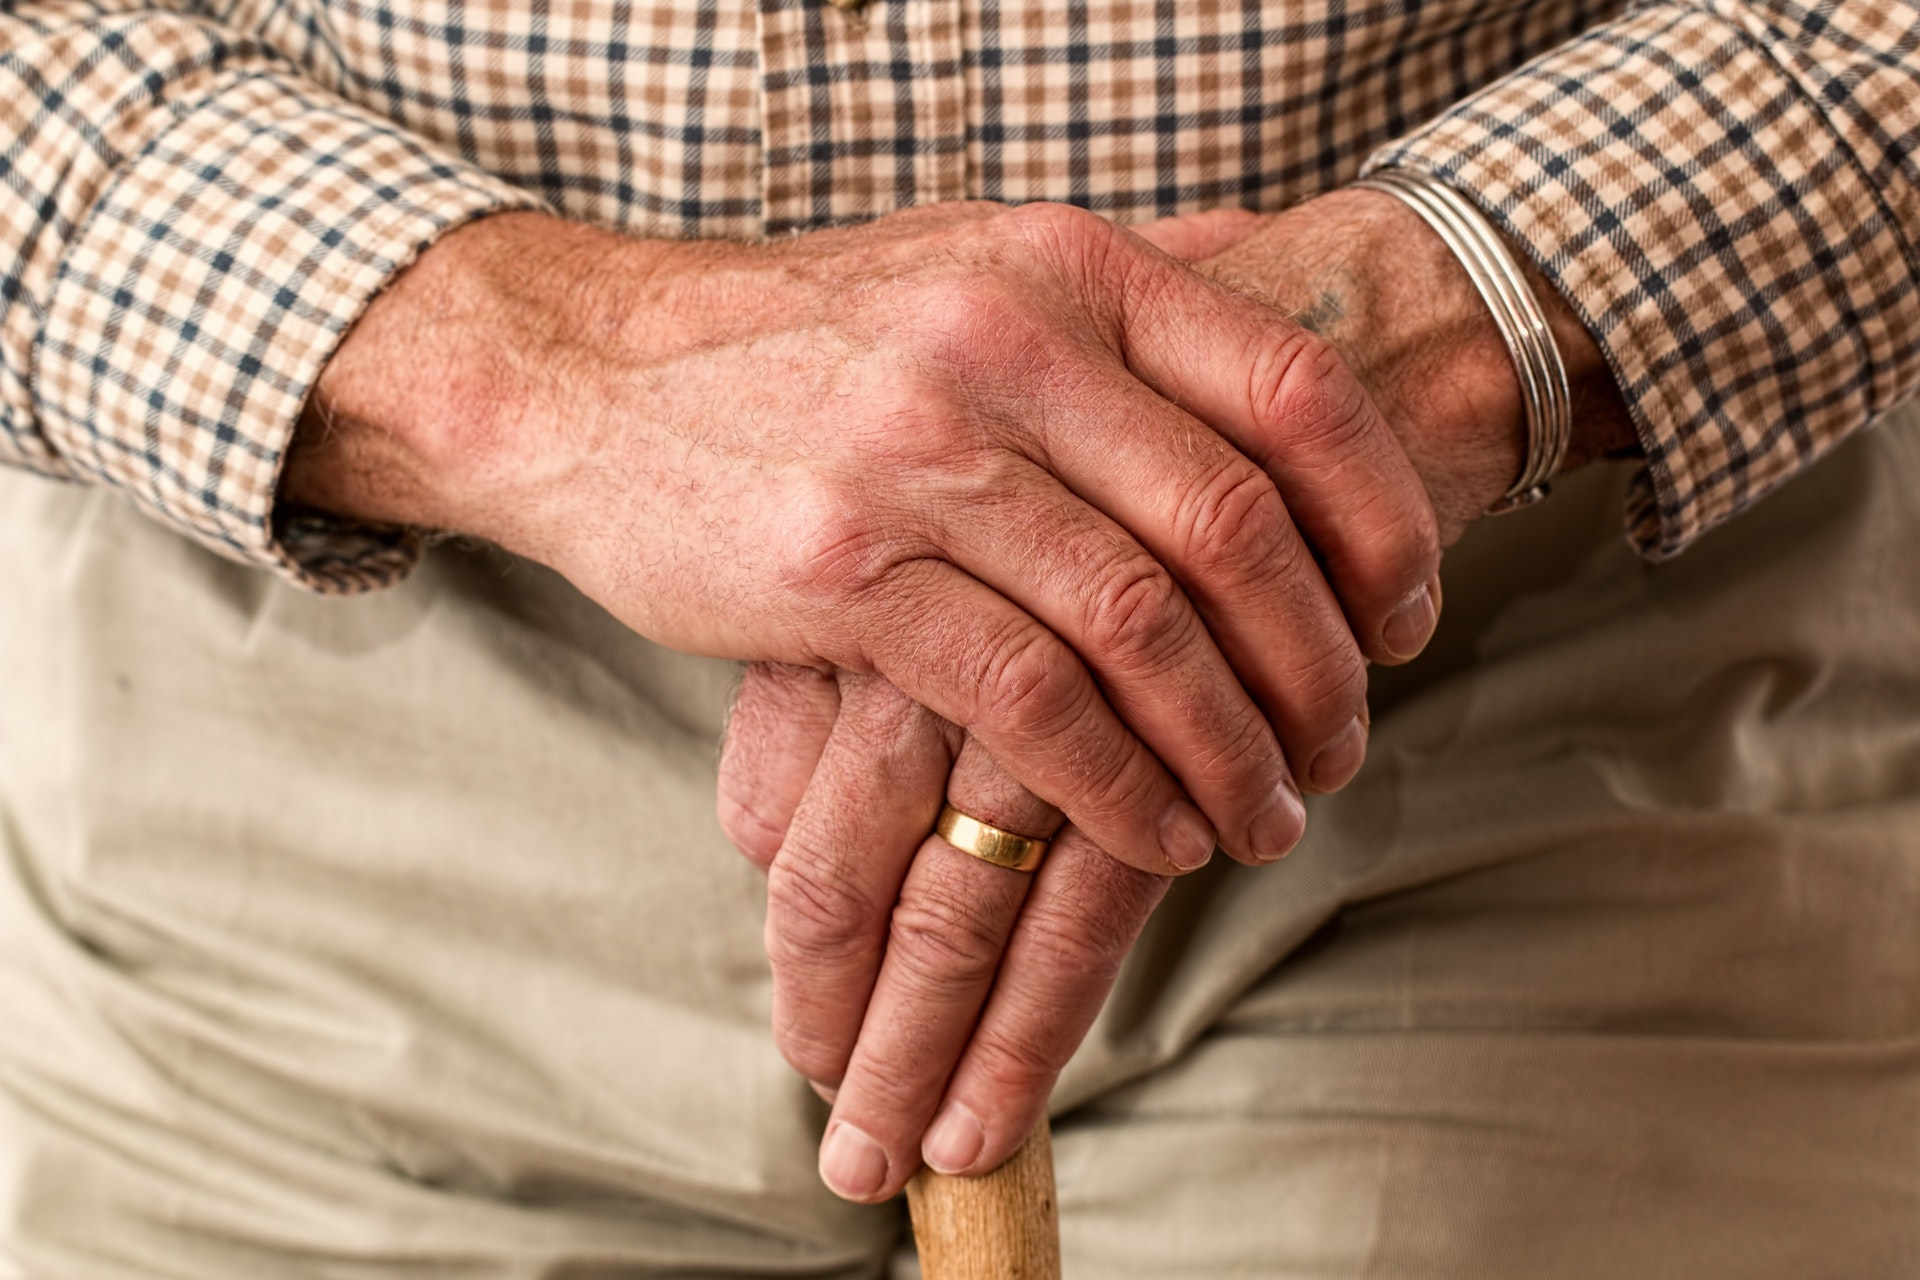 How To Help Your Elderly Relatives With Their Health